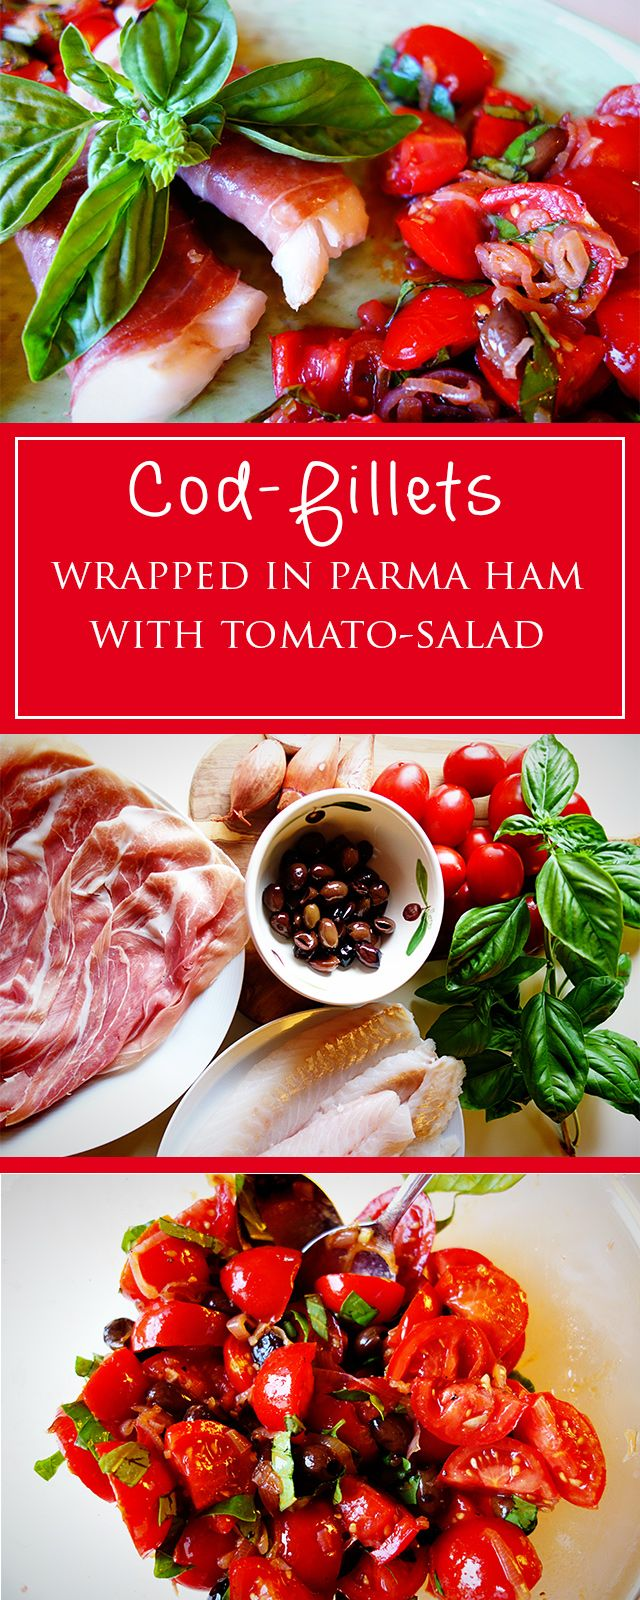 Cod-fillets in Parma ham with tomato-salad - a light, irresistably delicious gluten-free recipe! Quick, easy & most of all healthy!   cucina-con-amore.com